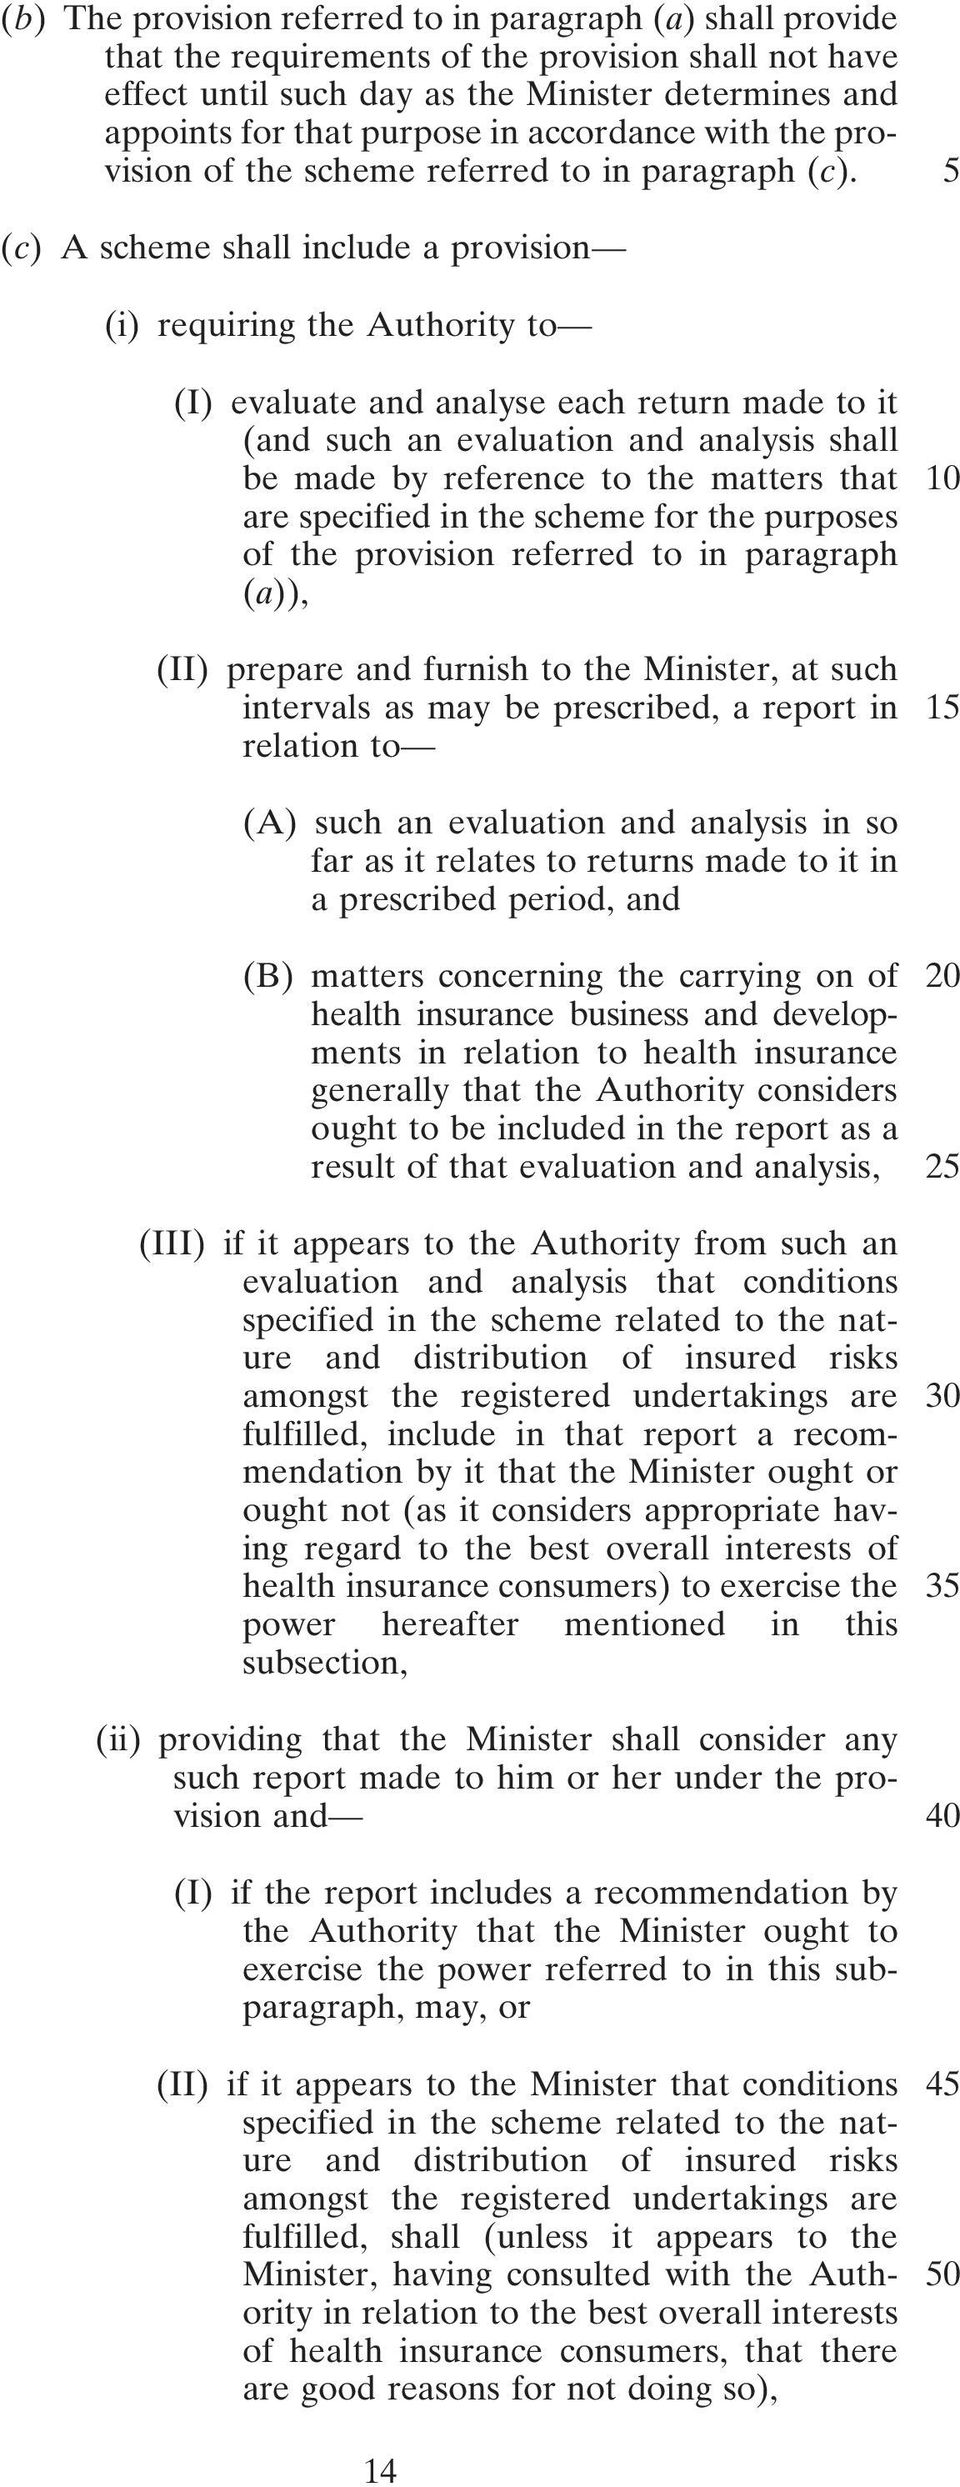 5 (c) A scheme shall include a provision (i) requiring the Authority to (I) evaluate and analyse each return made to it (and such an evaluation and analysis shall be made by reference to the matters